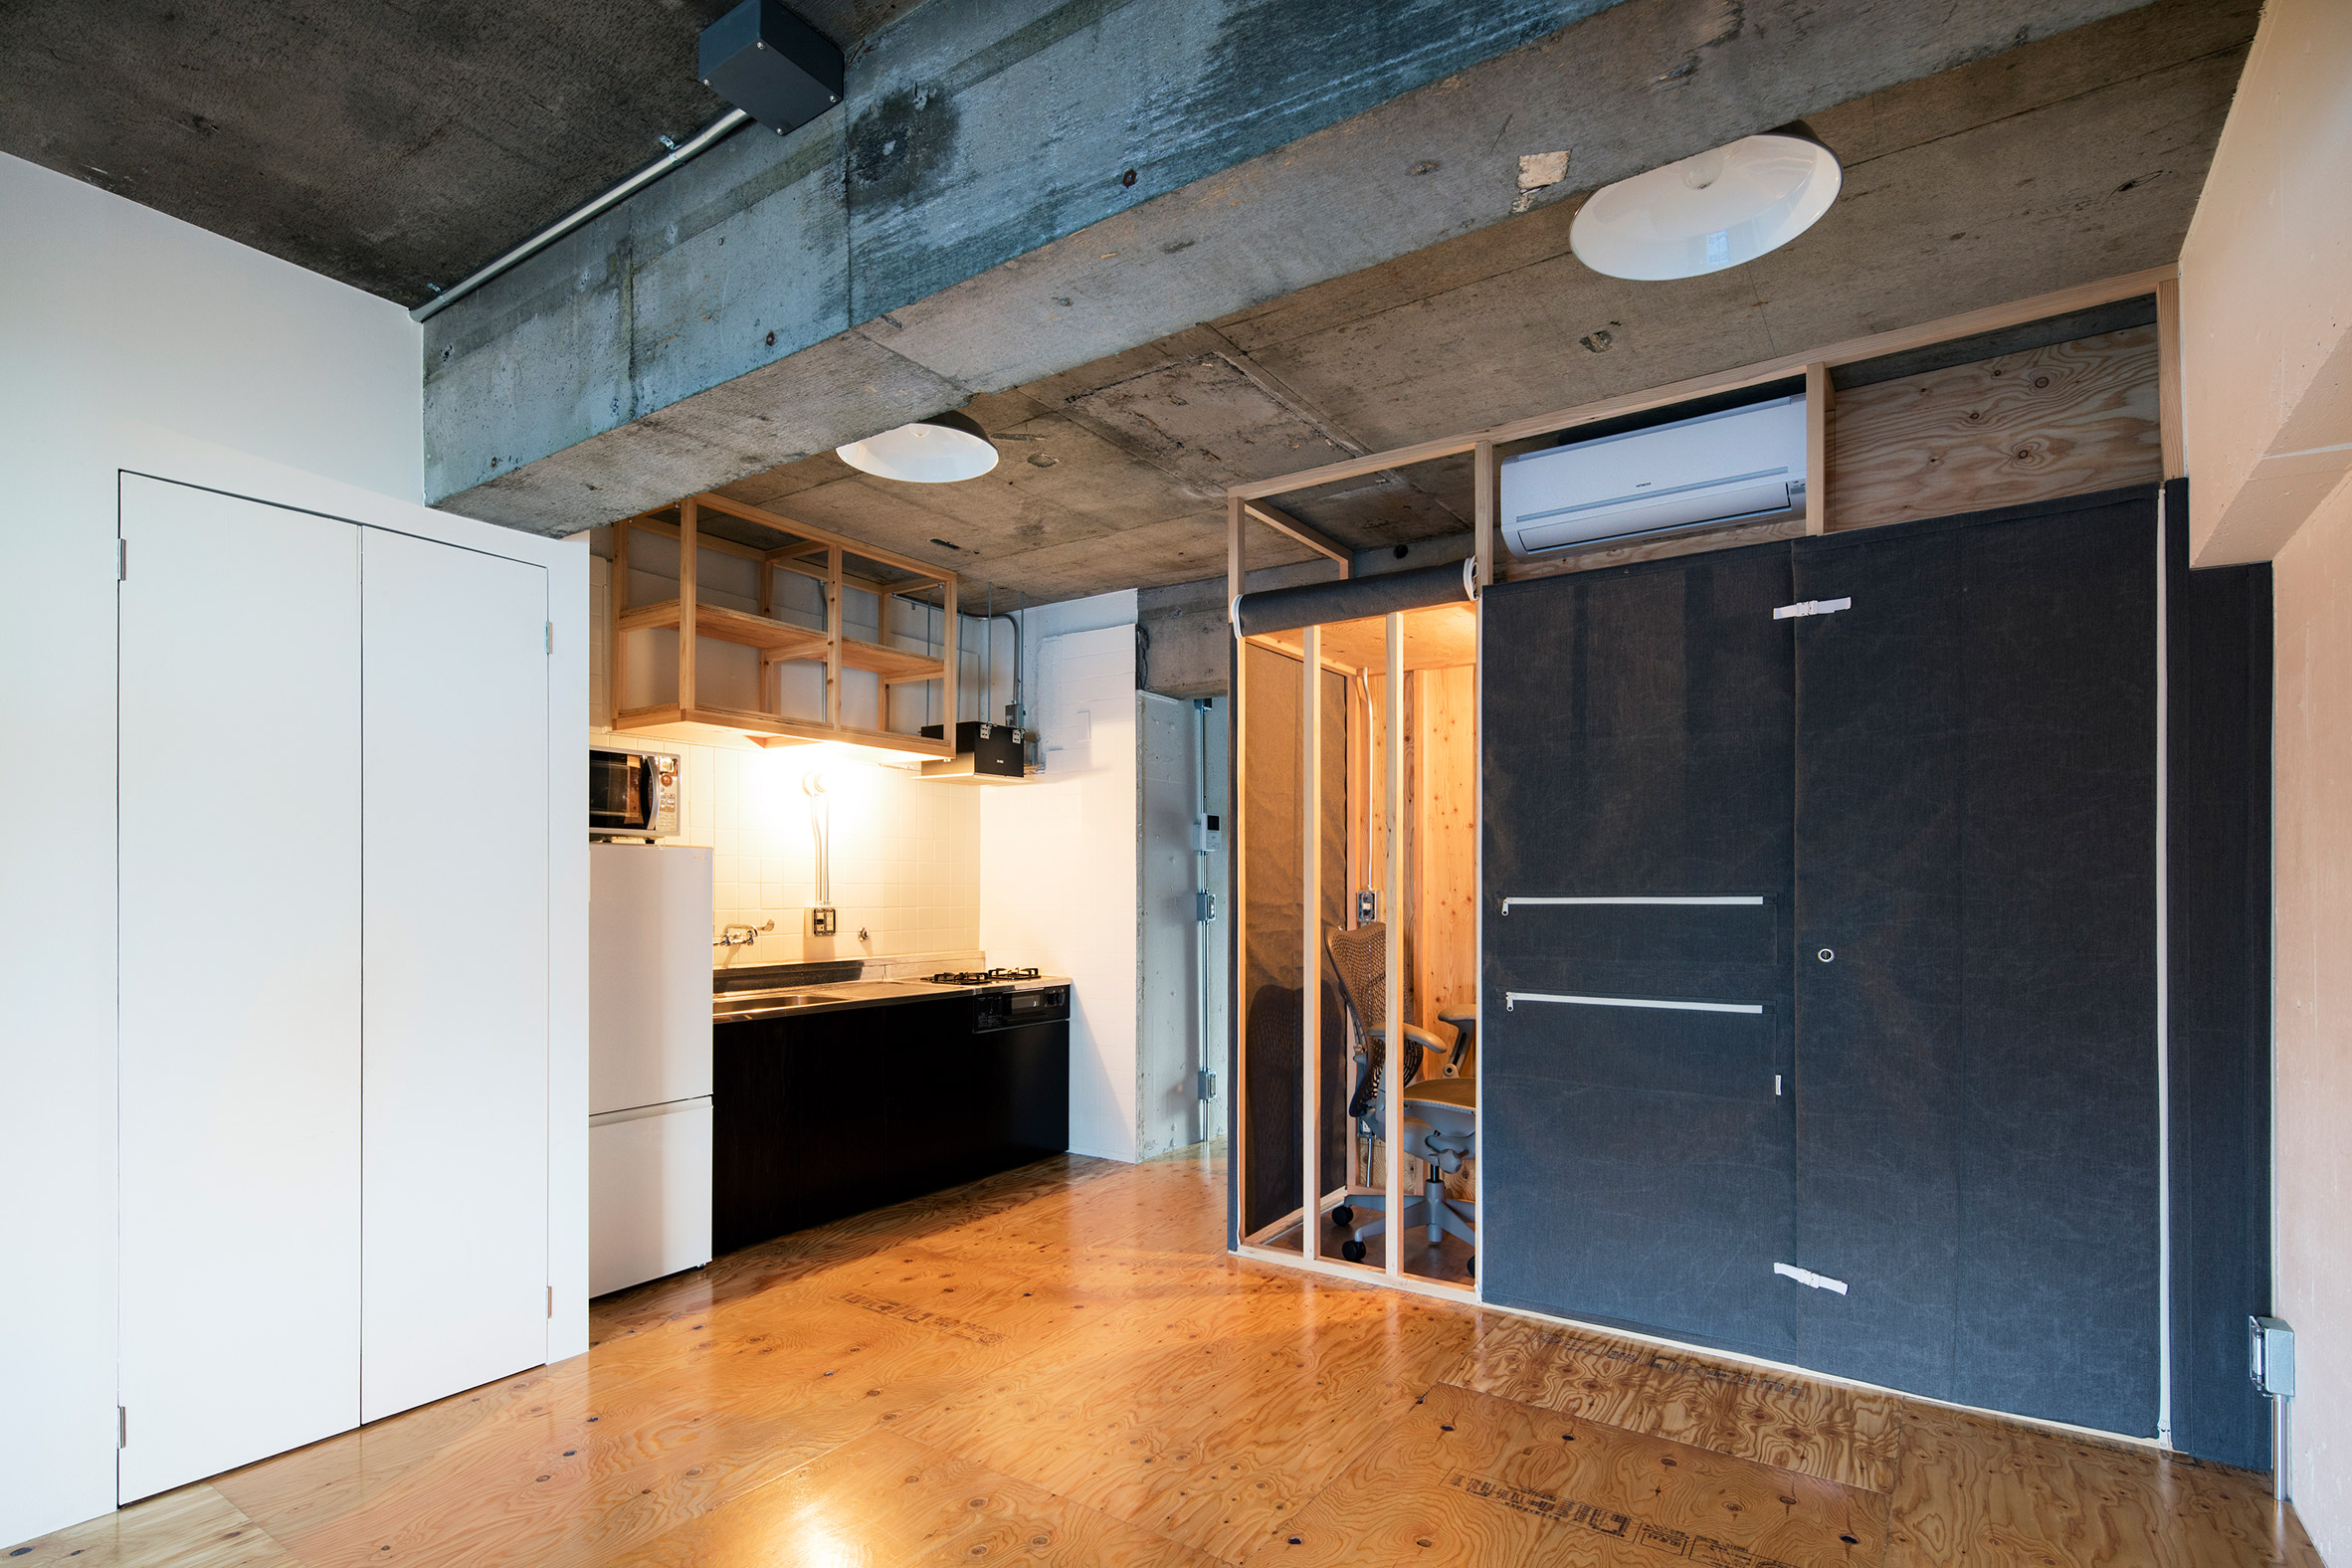 Renovated apartment in Tokyo has storage pockets sewn into its walls